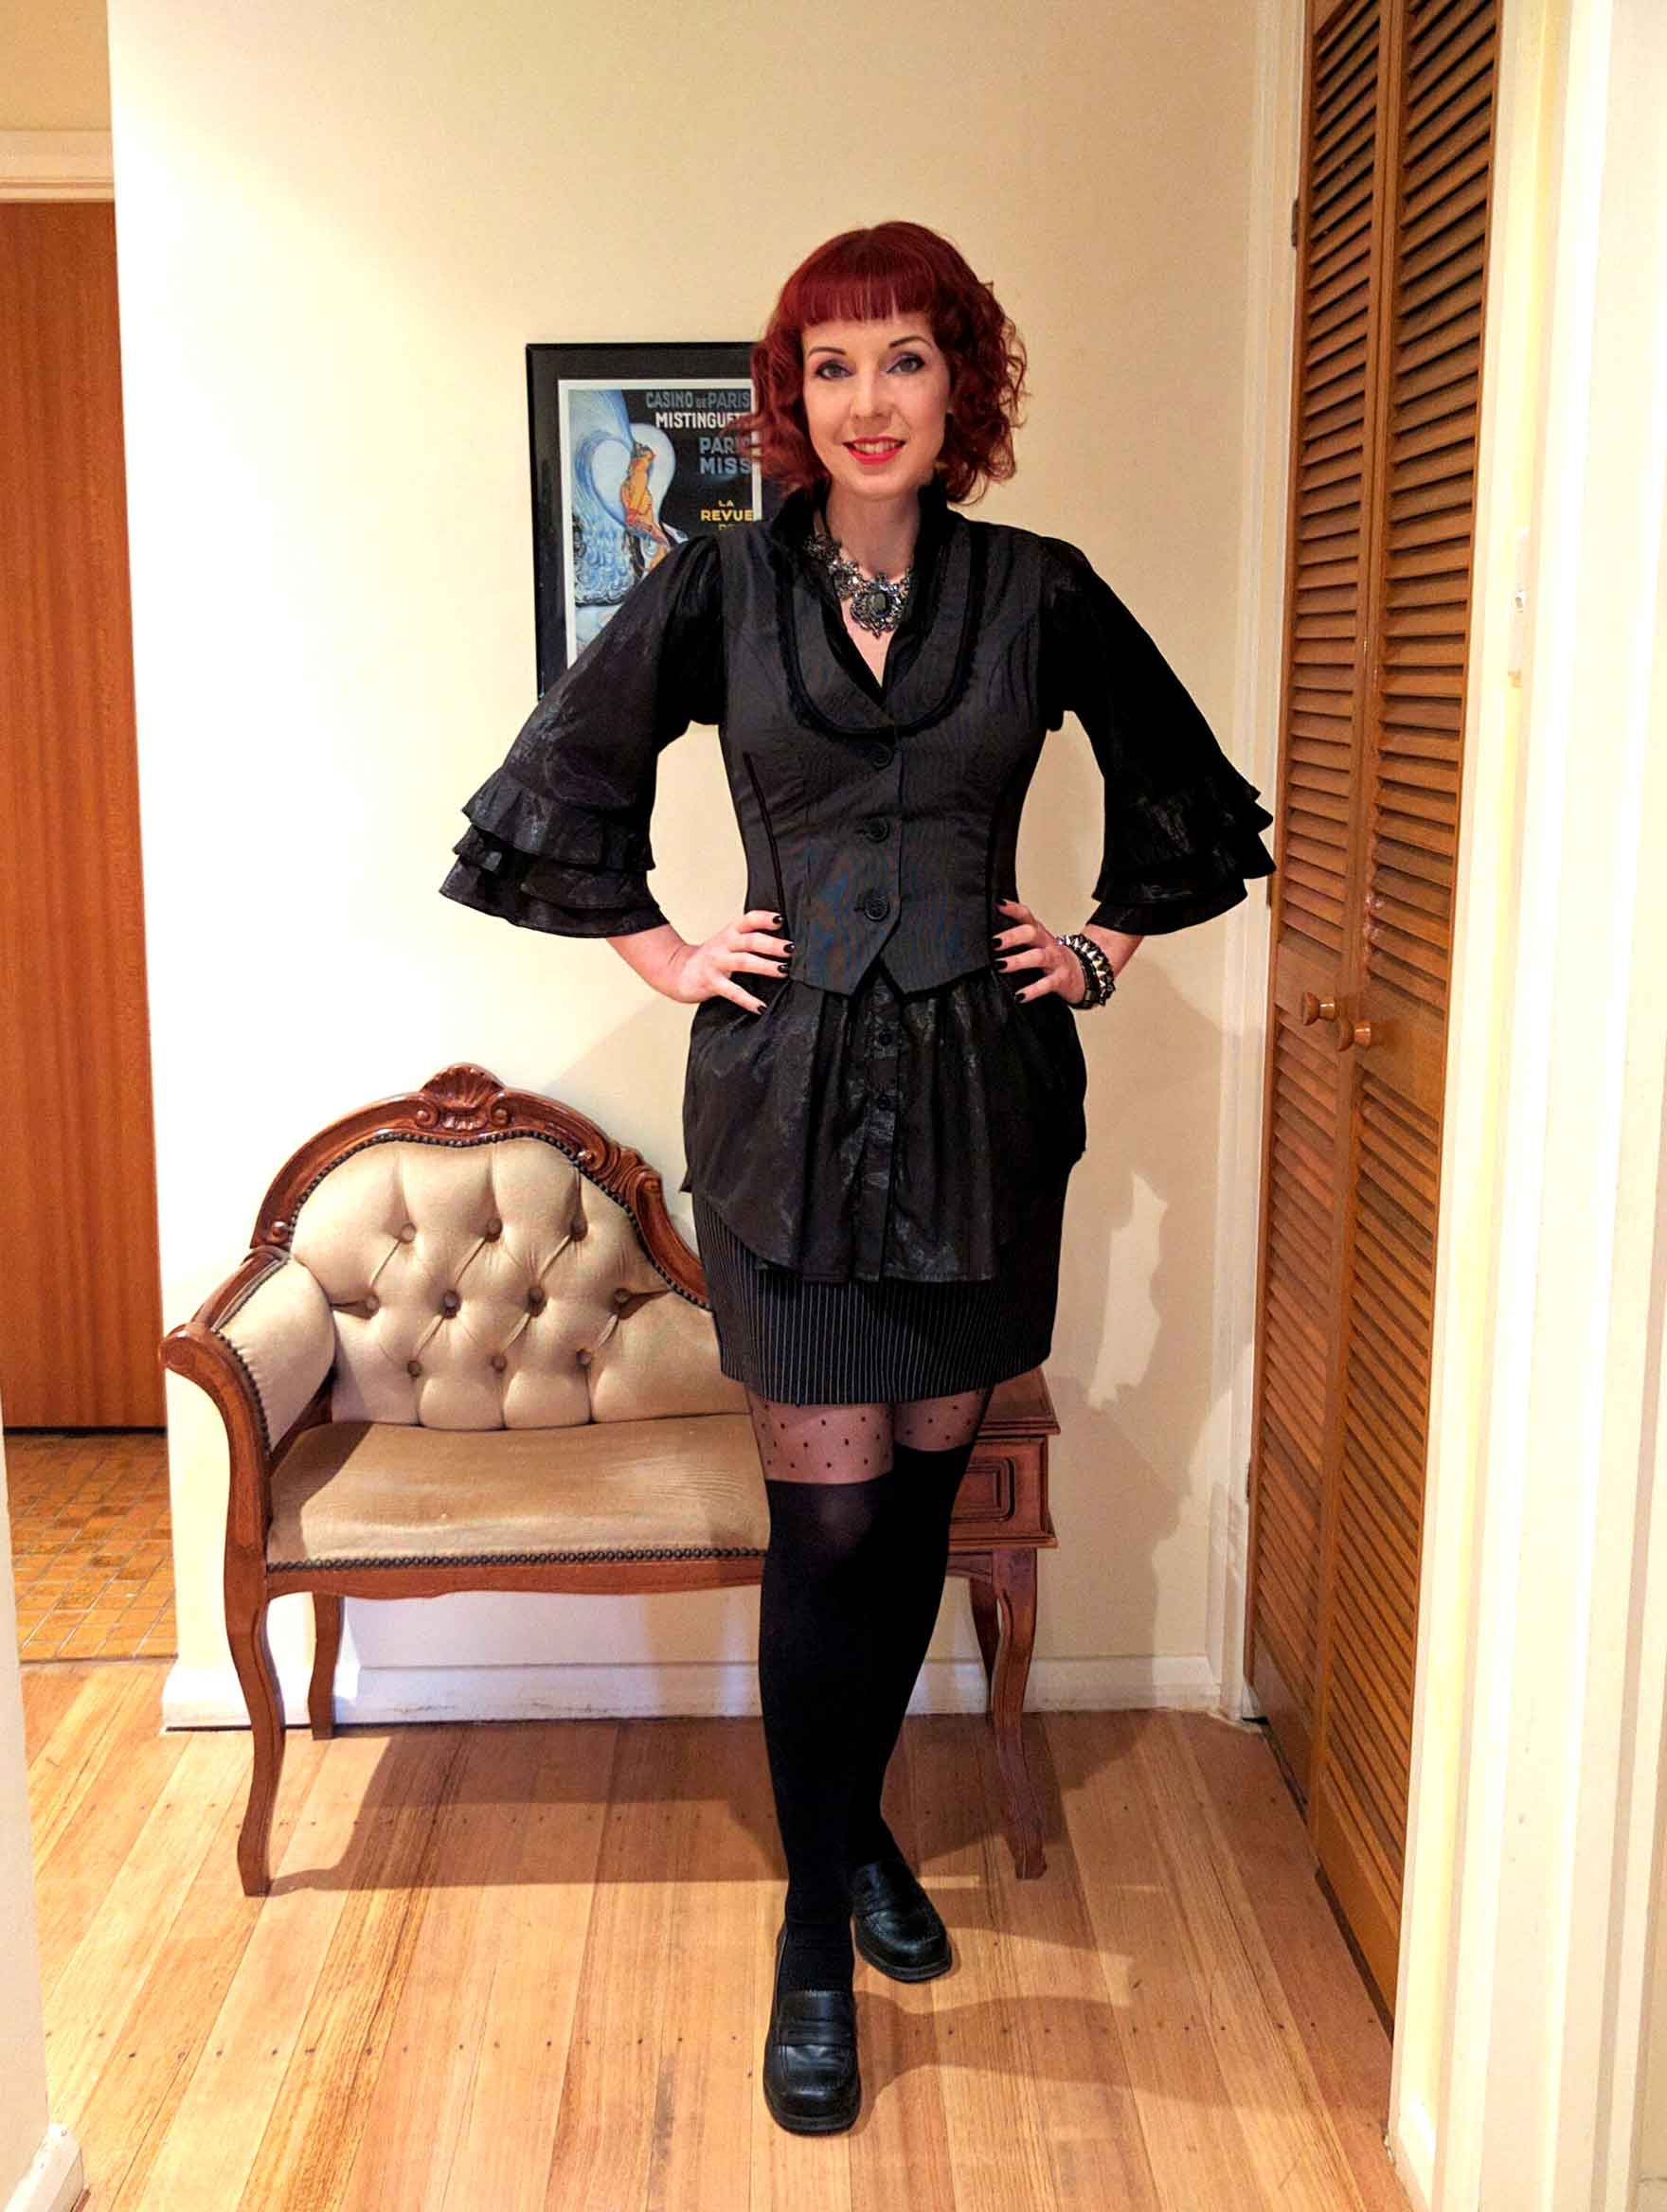 Goth outfit by Christine of Hexotica